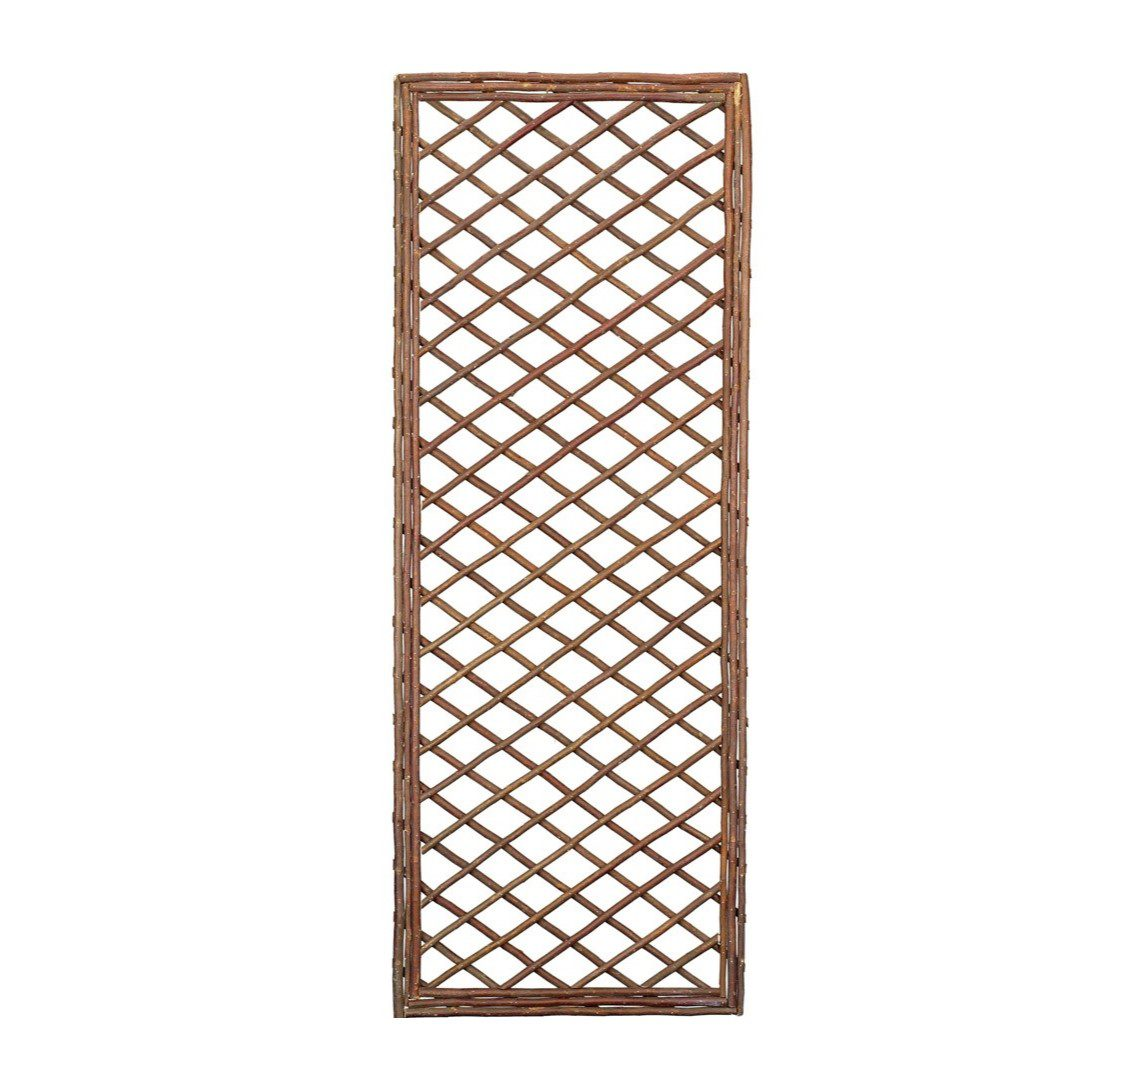 Gardman 1.8m x 0.6m Framed Willow Trellis Panel